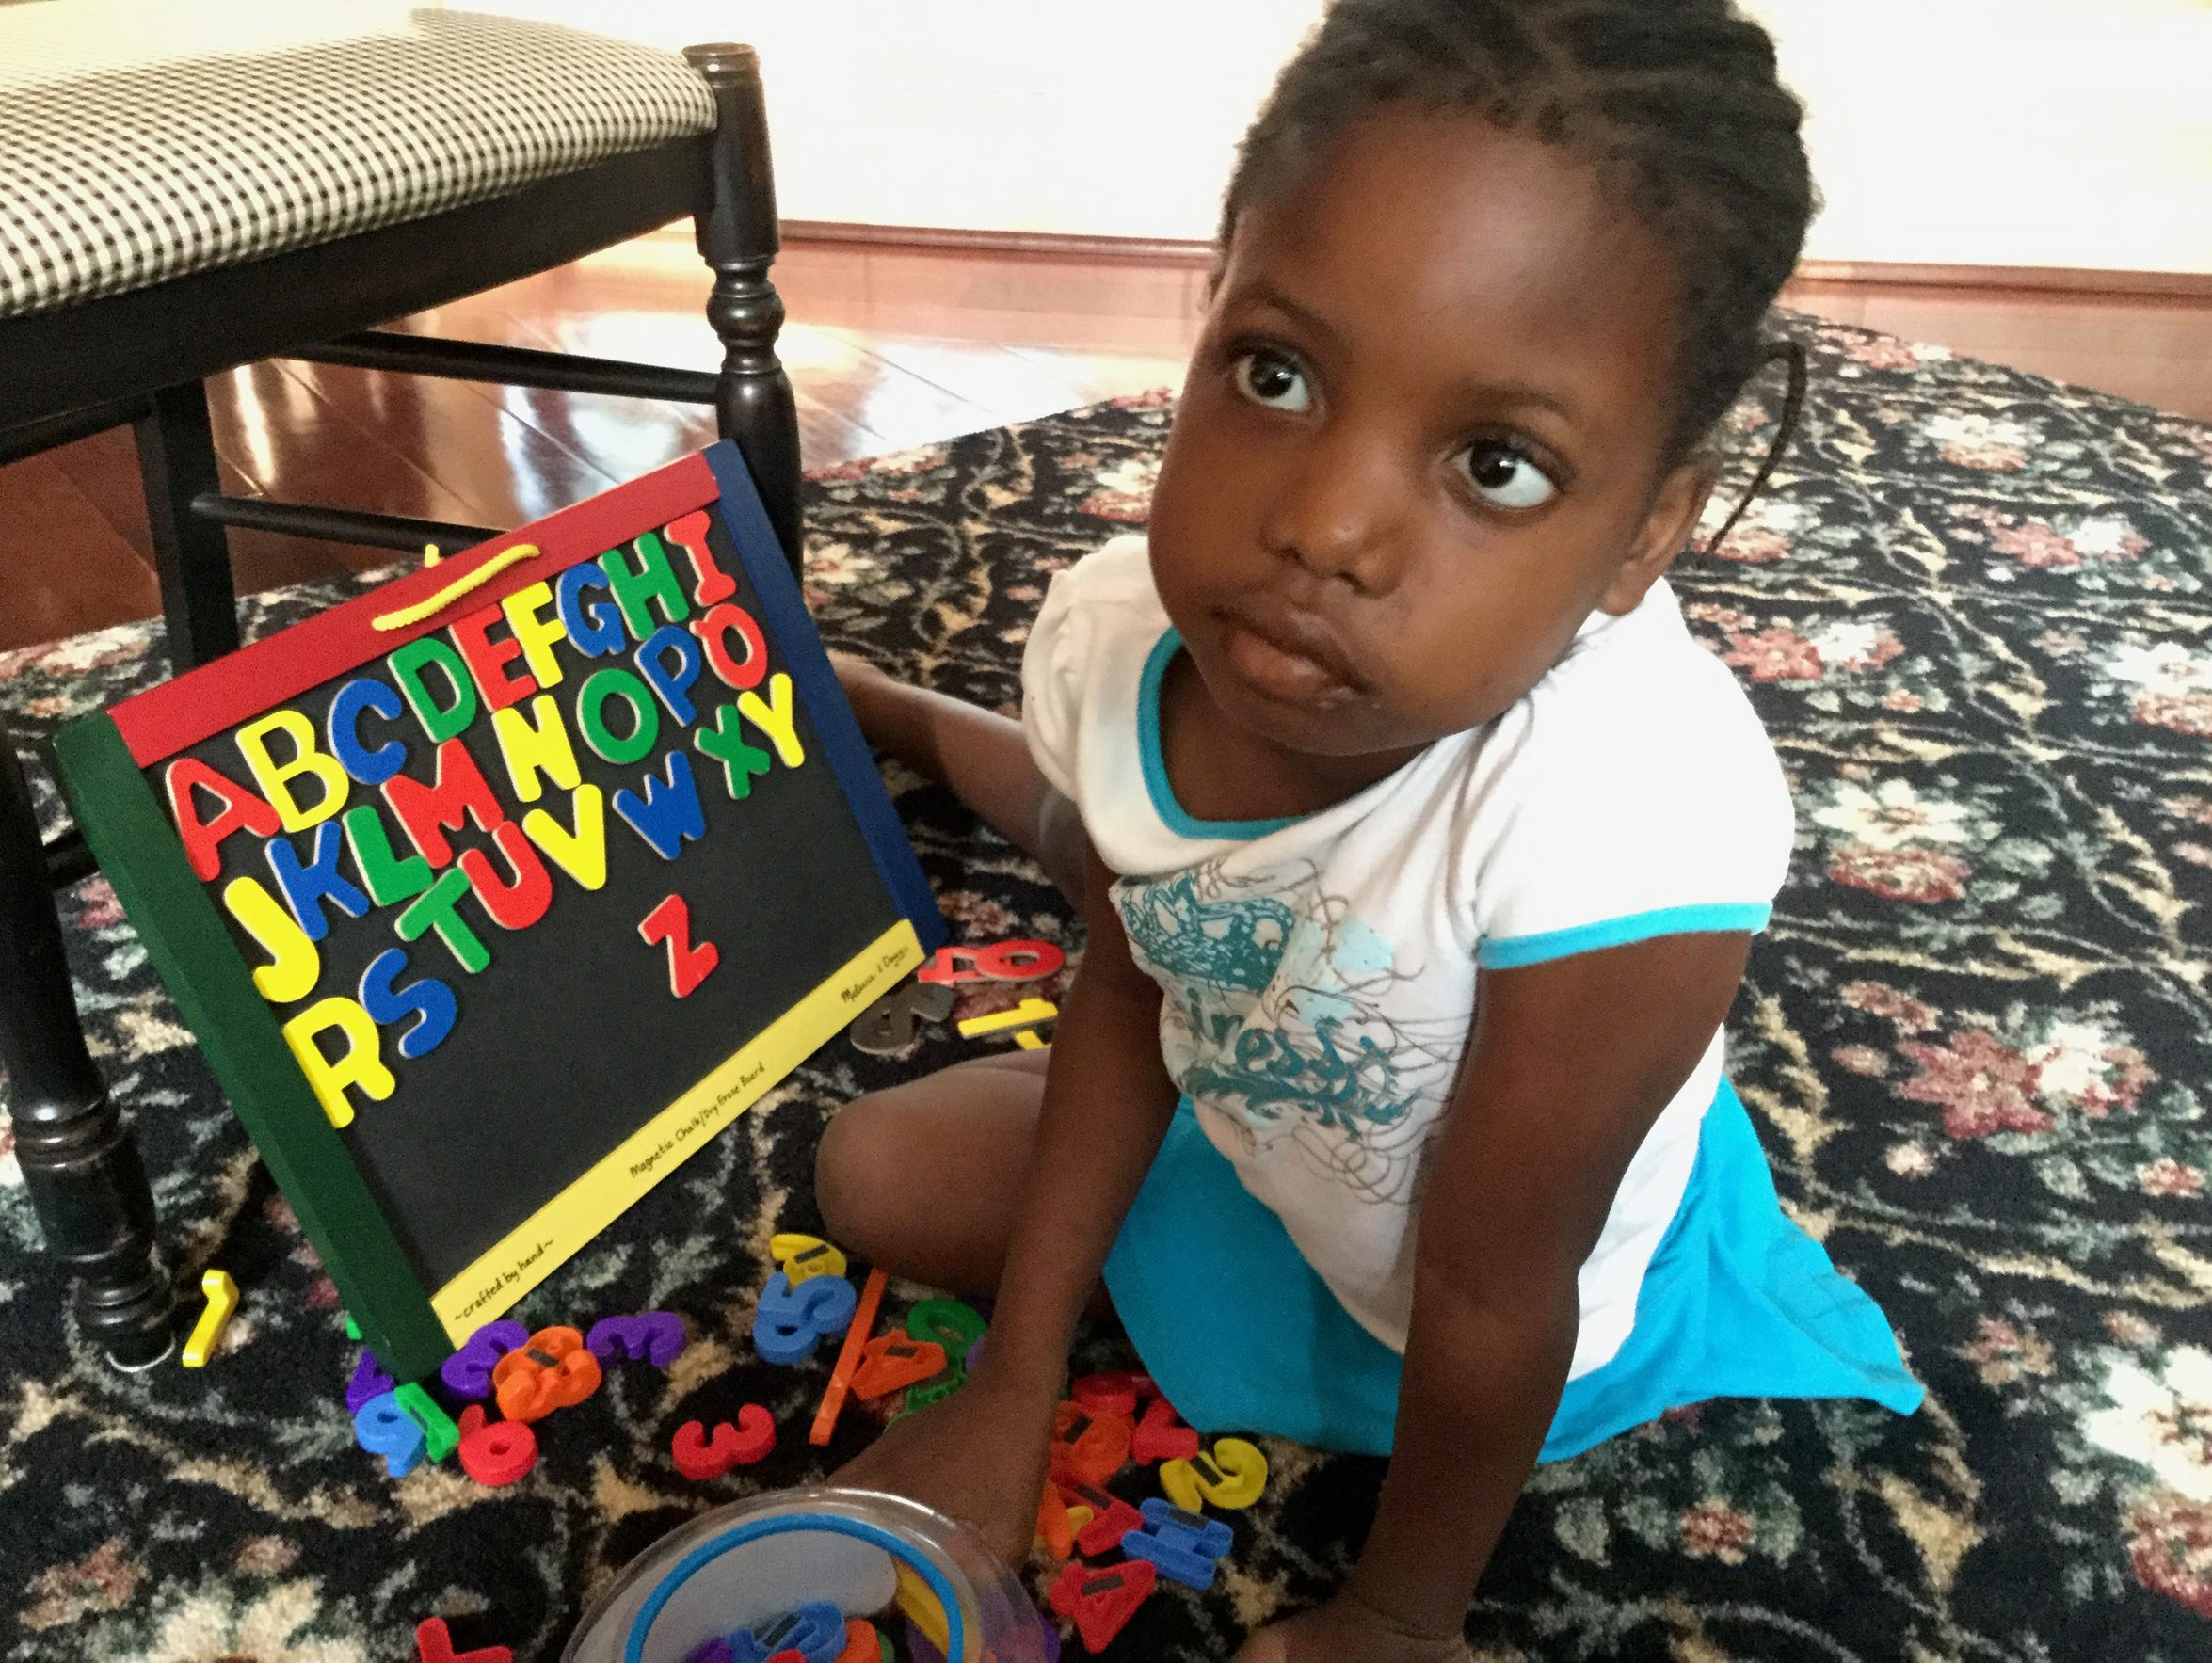 Chika, 5, who was homeschooled, practices her spelling